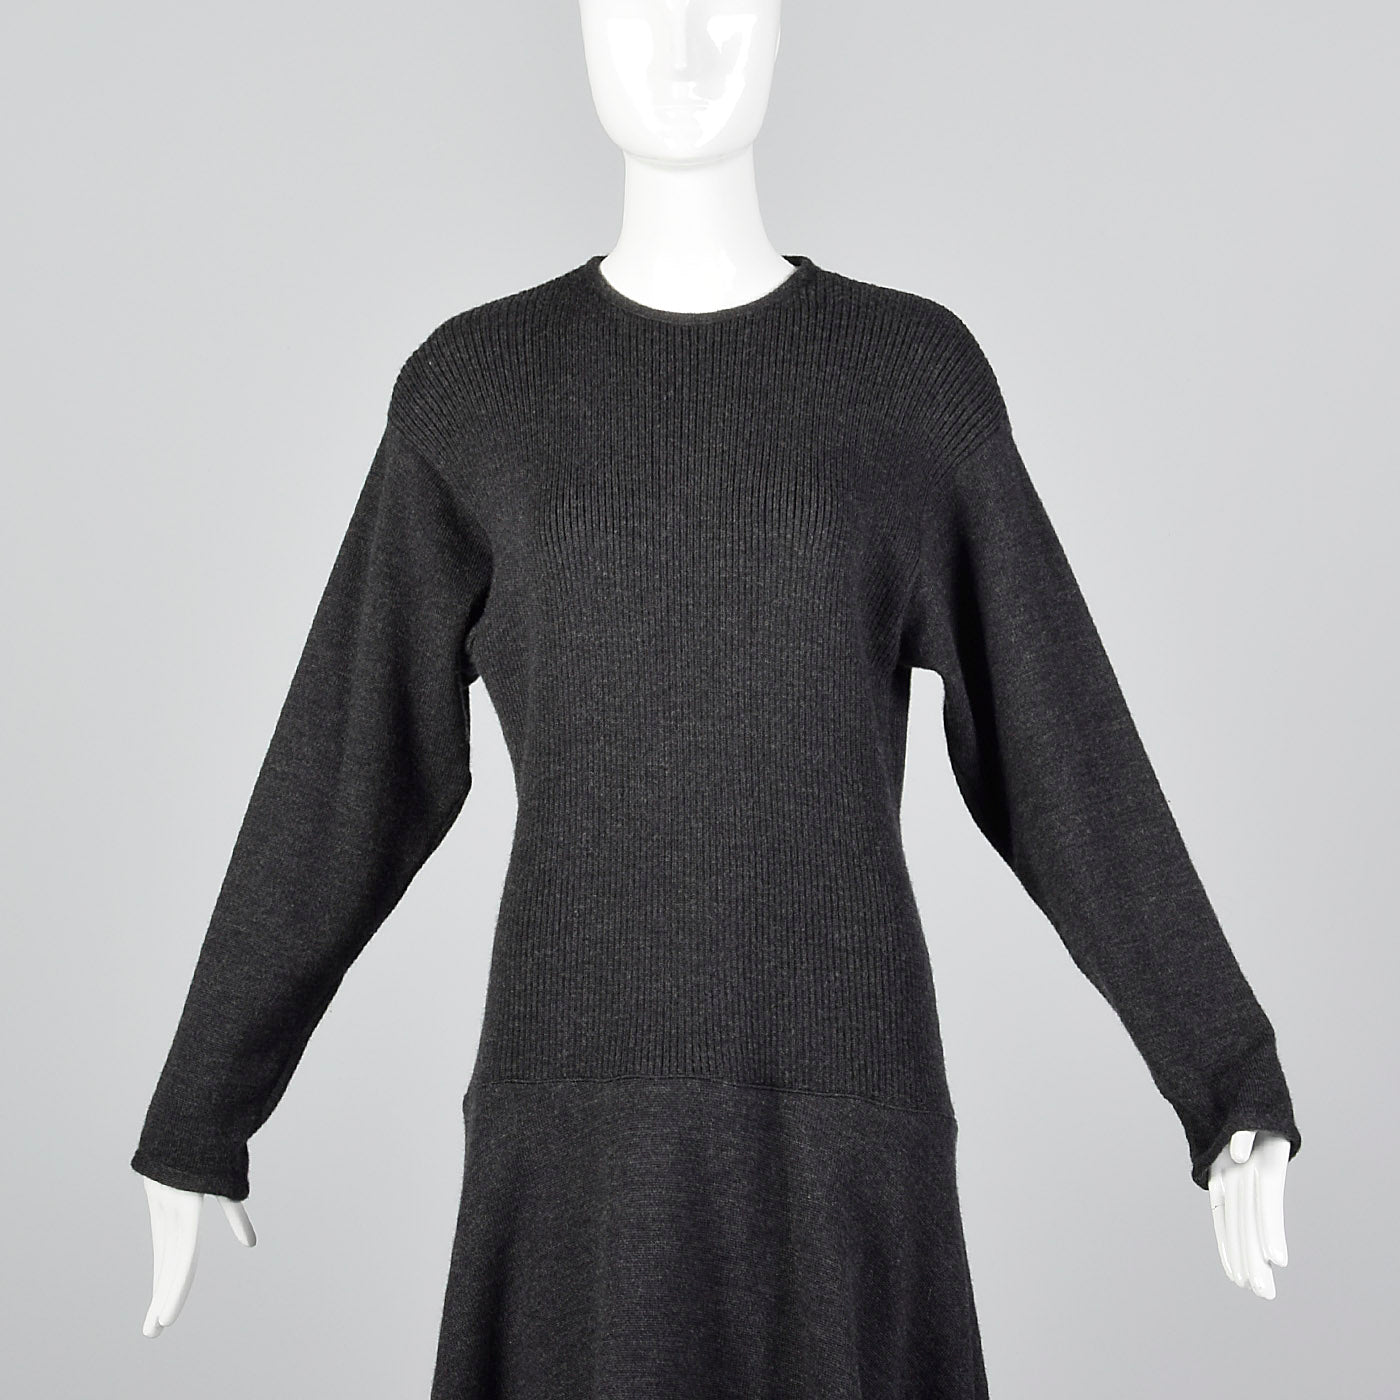 1970s Lilli Ann I. Magnin Gray Sweater Dress